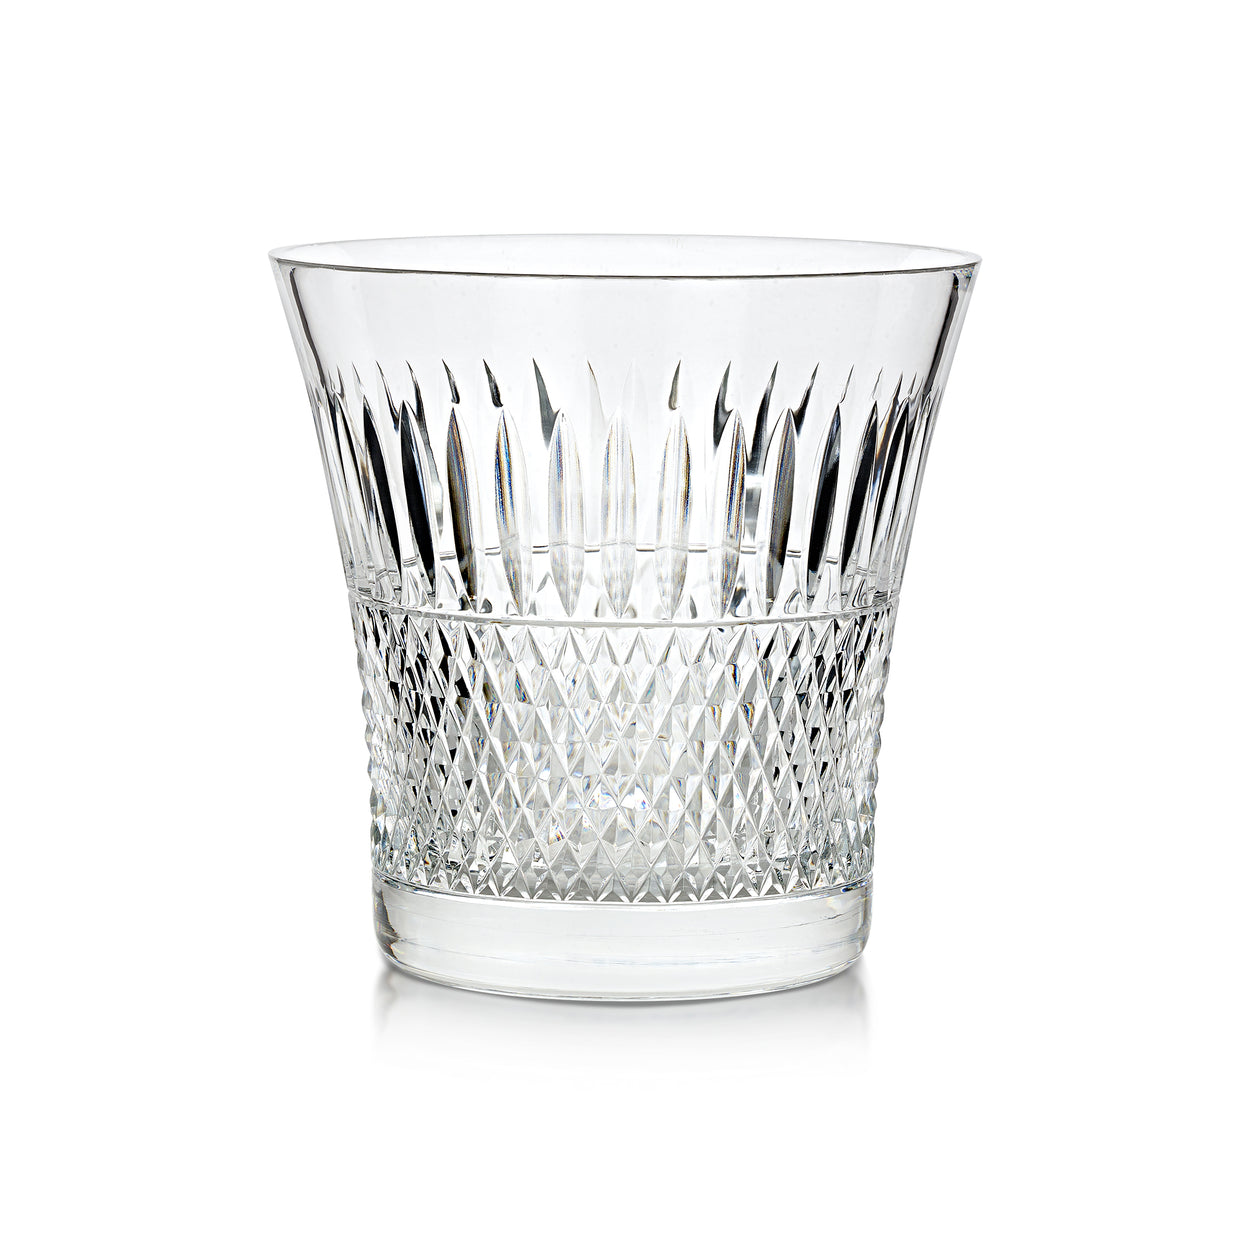 Cumbria Crystal Thistle Cut Ice Bucket - Hamilton & Inches